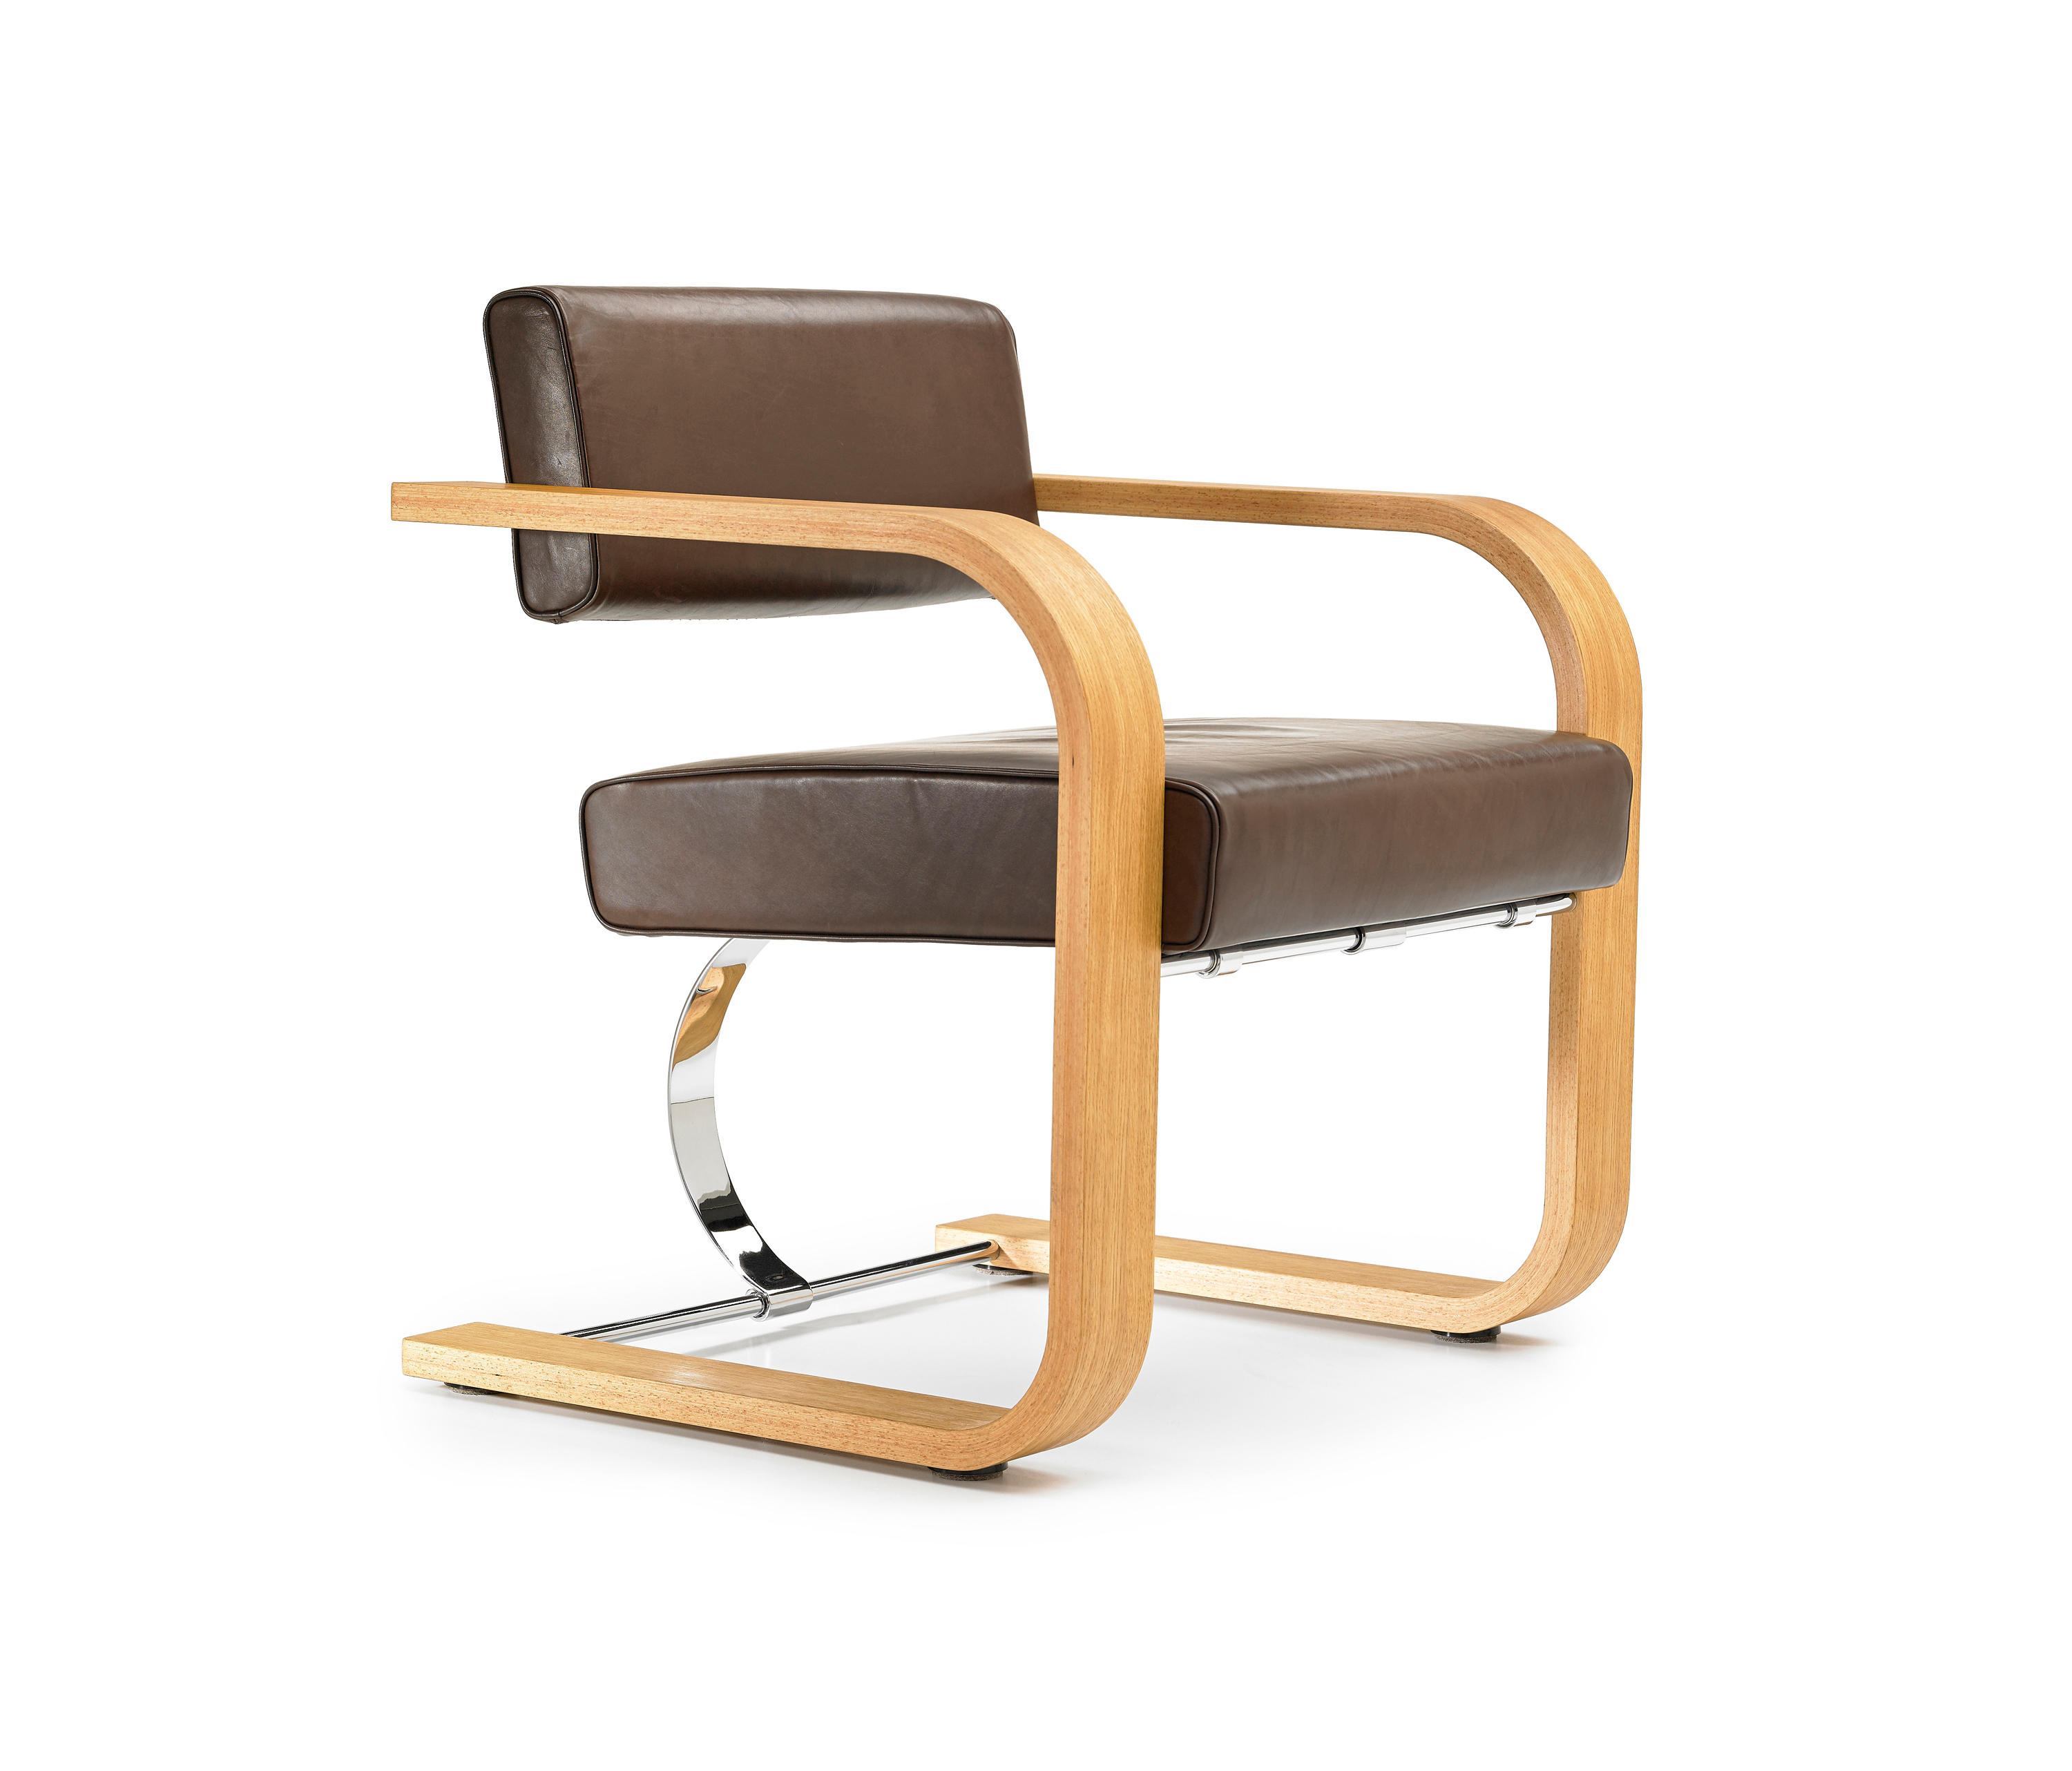 Cantilever chair wood visitors chairs side chairs from for Chair vs chairman